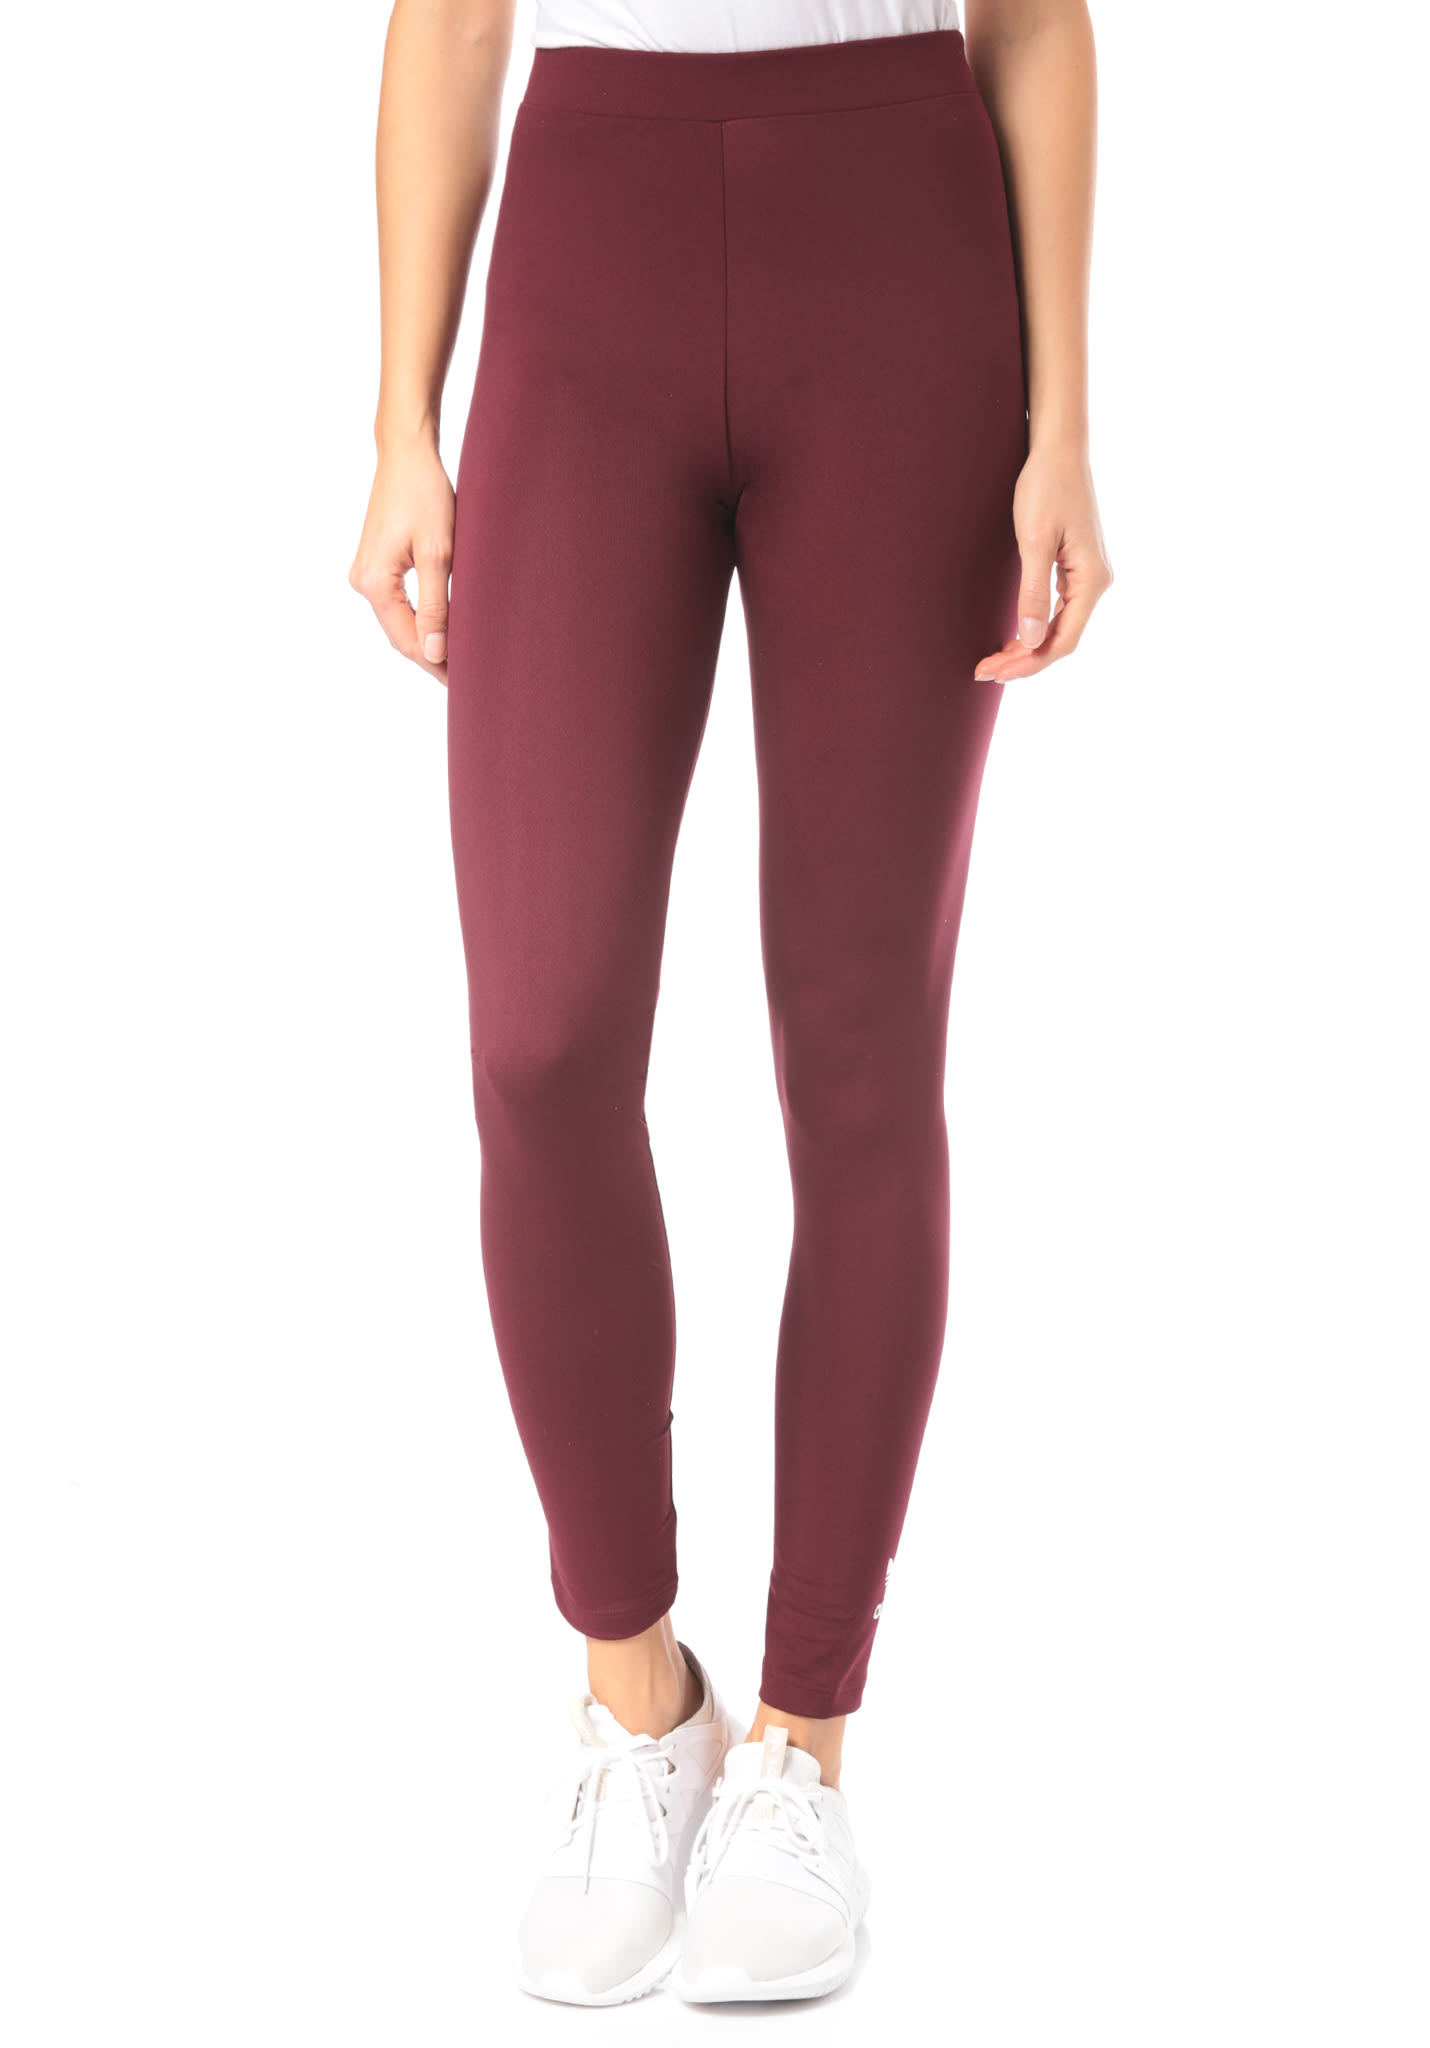 082fbeac72 adidas-trefoil-tight-leggings-femmes-rouges.jpg